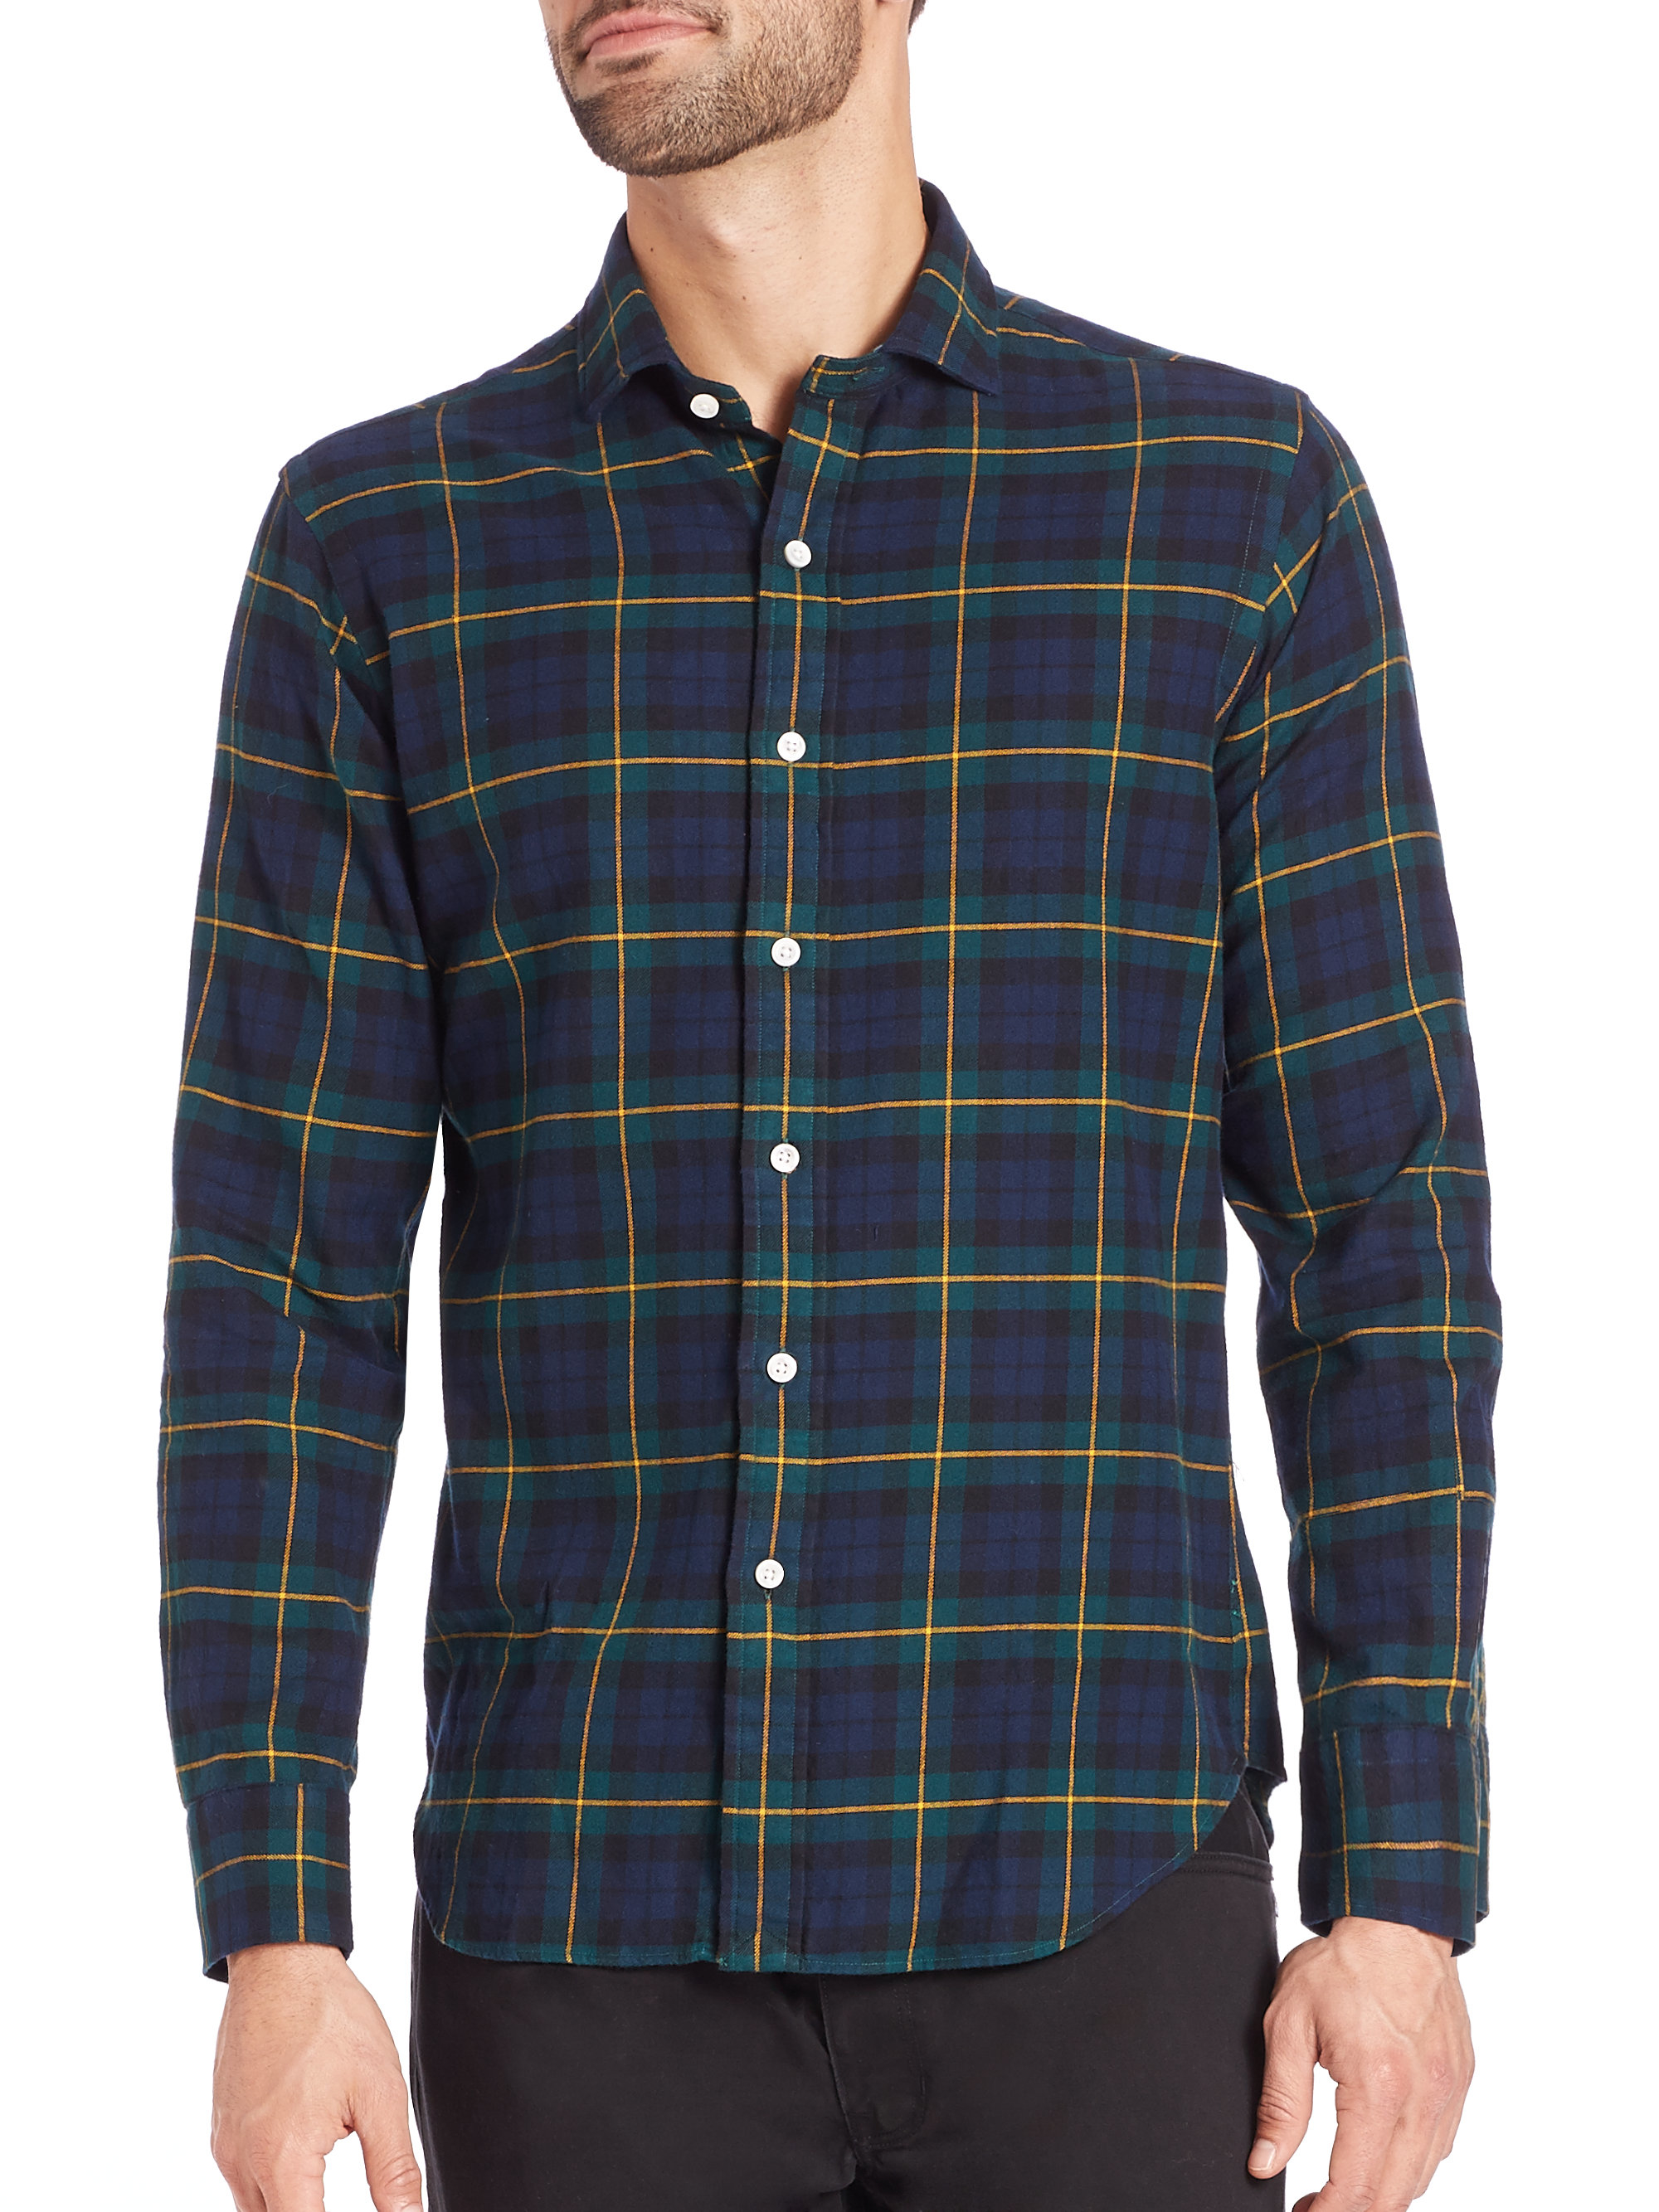 Shop blue plaid shirt at Neiman Marcus, where you will find free shipping on the latest in fashion from top designers.